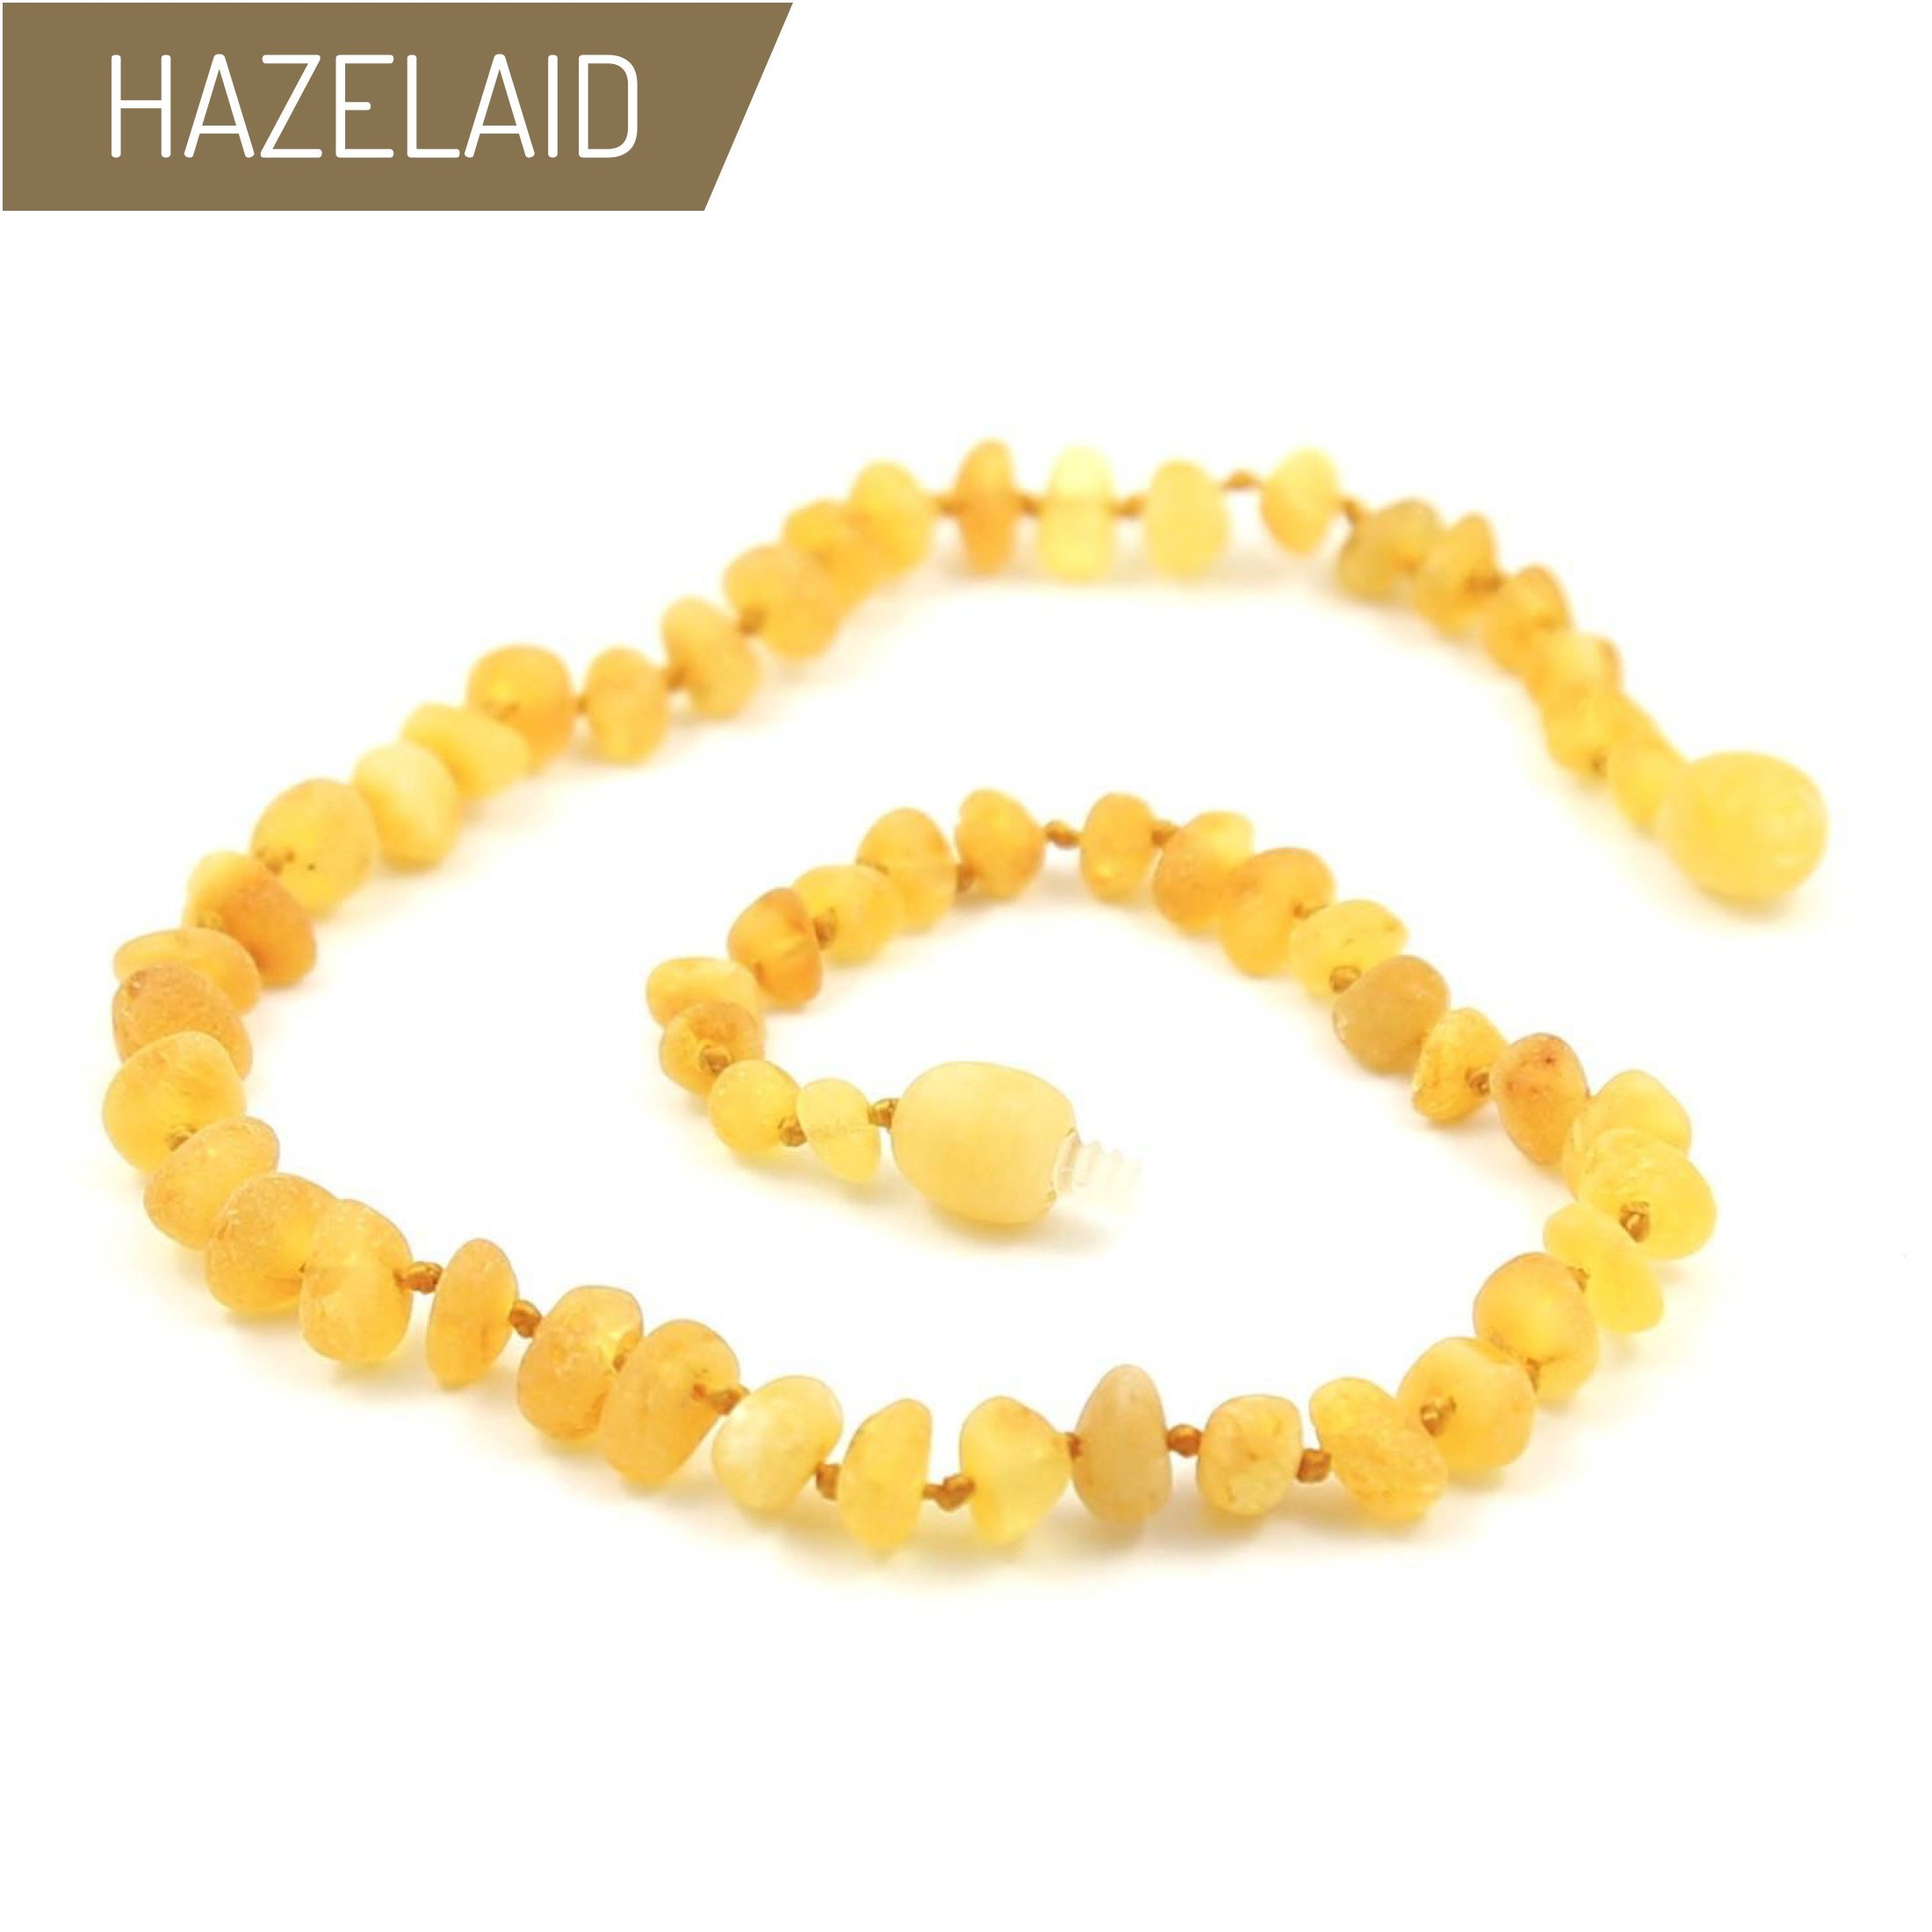 Hazelaid (TM) 12'' Baltic Amber Lemondrop Necklace